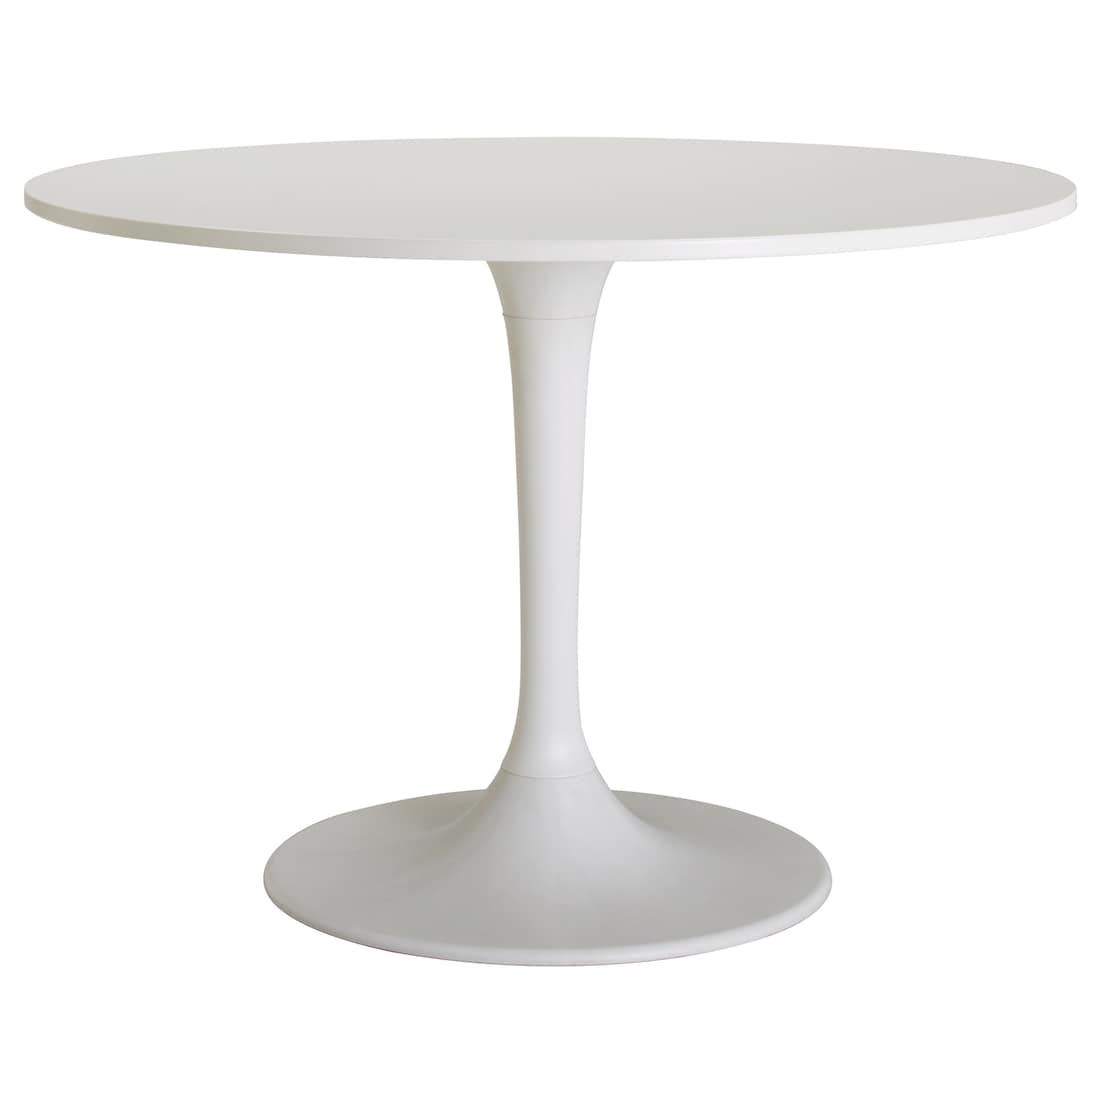 Ikea Us Furniture And Home Furnishings In 2021 White Dining Table Ikea Tulip Table Round Kitchen Table